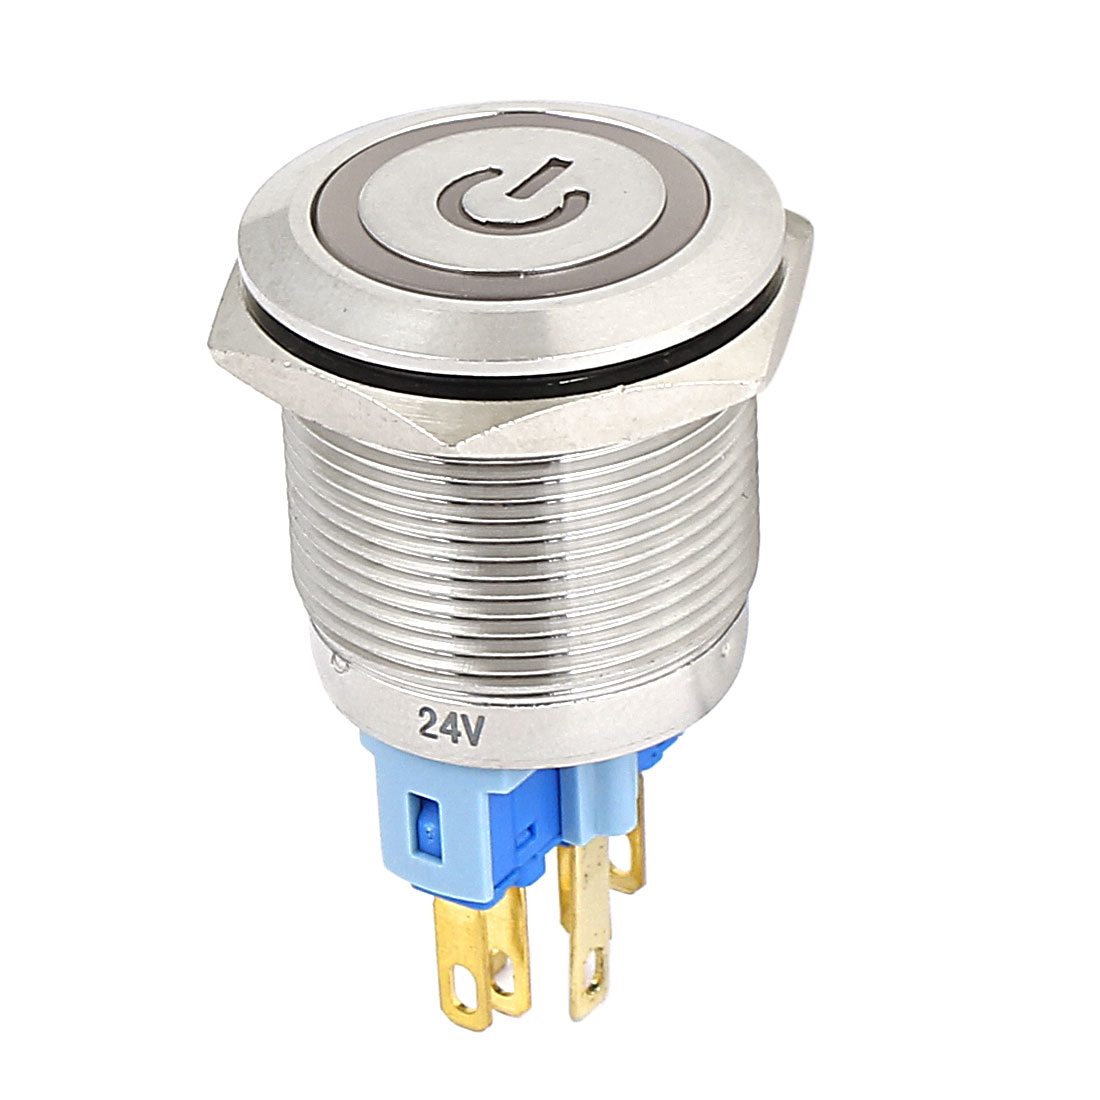 24V 22mm Dia Thread Blue LED Lamp Latchng Metal Power Pushbutton Switch